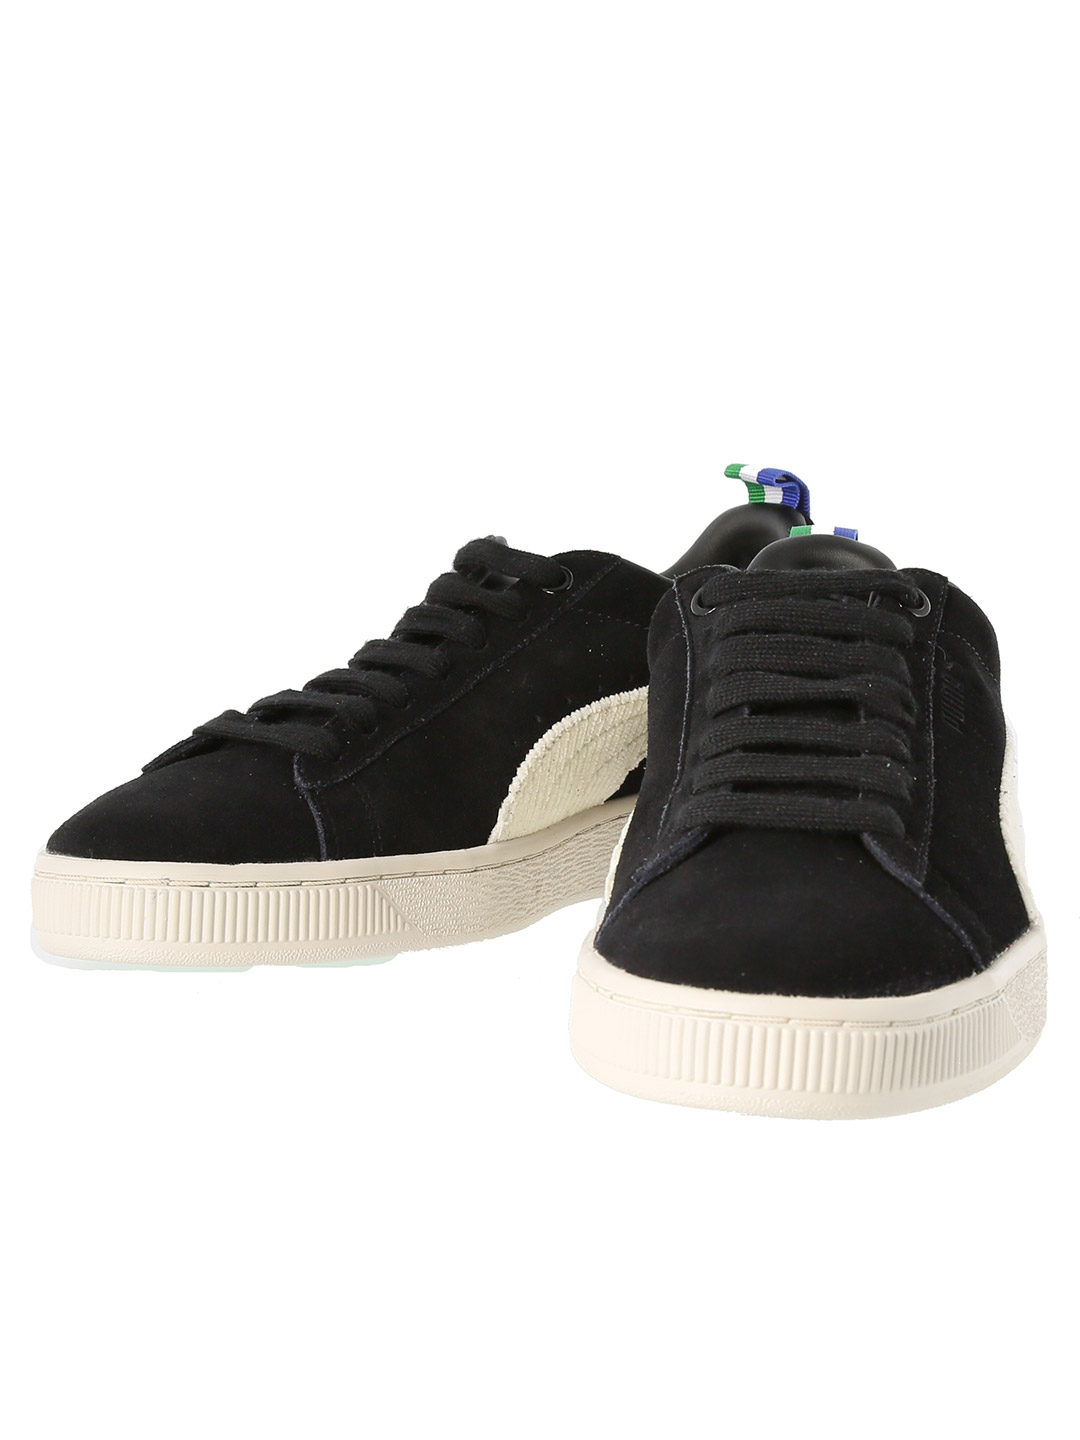 プーマ/PUMA PUMA X BIG SEAN SUEDE BLACK WHITE